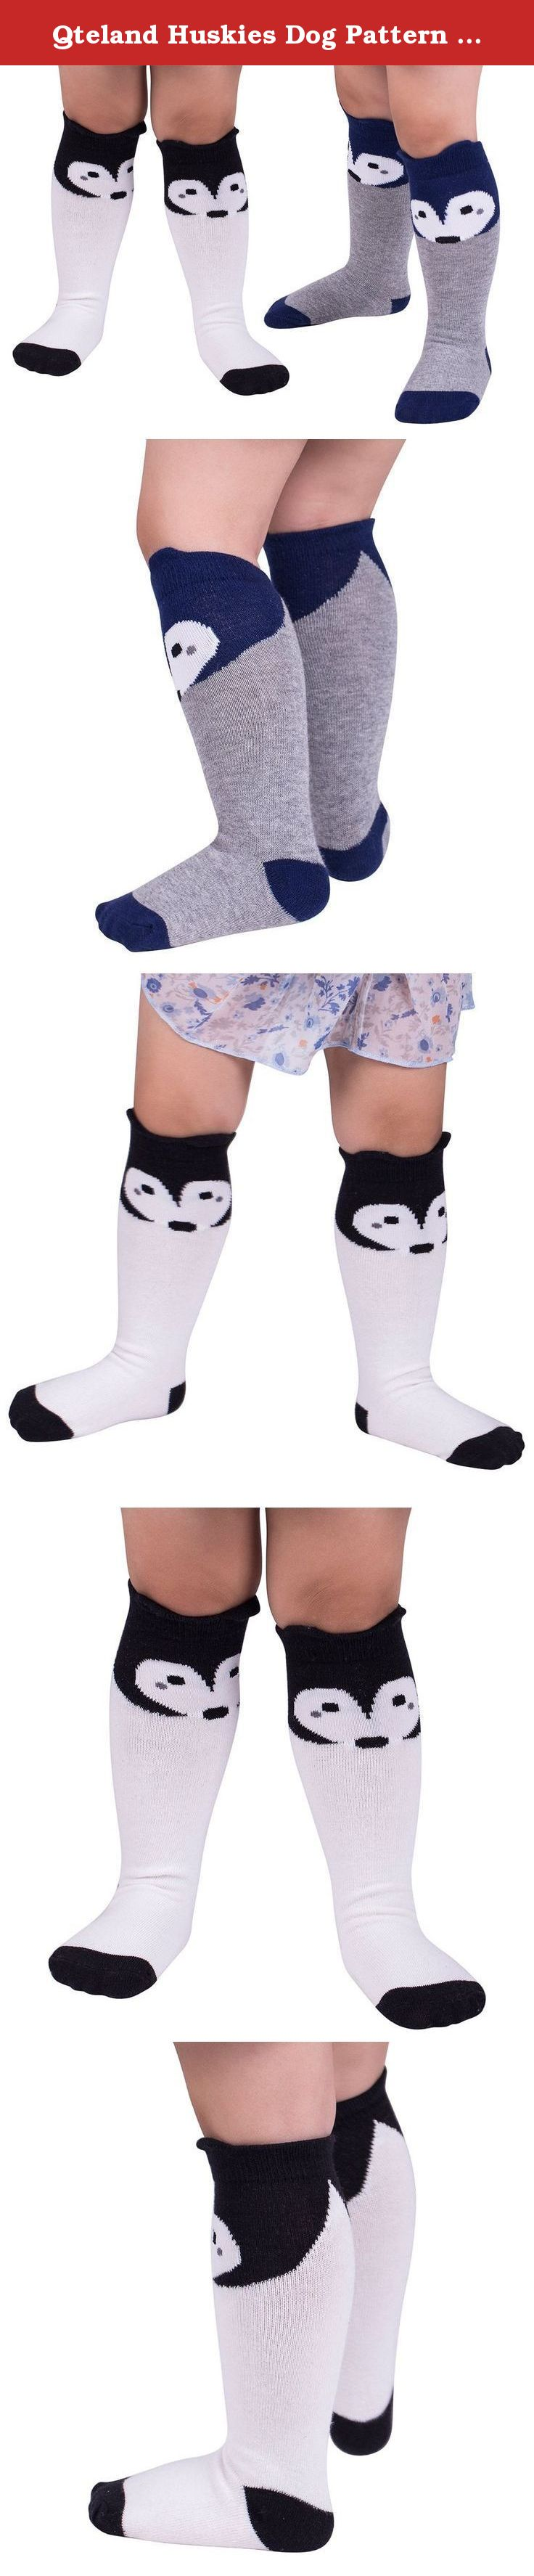 Qteland Huskies Dog Pattern Unisex-baby Knee High Socks Tube socks for Kids 2-pack (L(4-6 years), Mix). Qteland Cotton high knee socks for Babies are an adorable and fashion item dress up your little one. Look for all of our adorable high knee socks! Available in stripes, Geometry,fox,cat,Mickey Mouse,bear, rabbit and so on. A material composition for comfort these socks are made of 75% cotton, 20% polyester, and 5% spandex for a snug, comfortable fit. Three size for your choose Size S: 0-12...